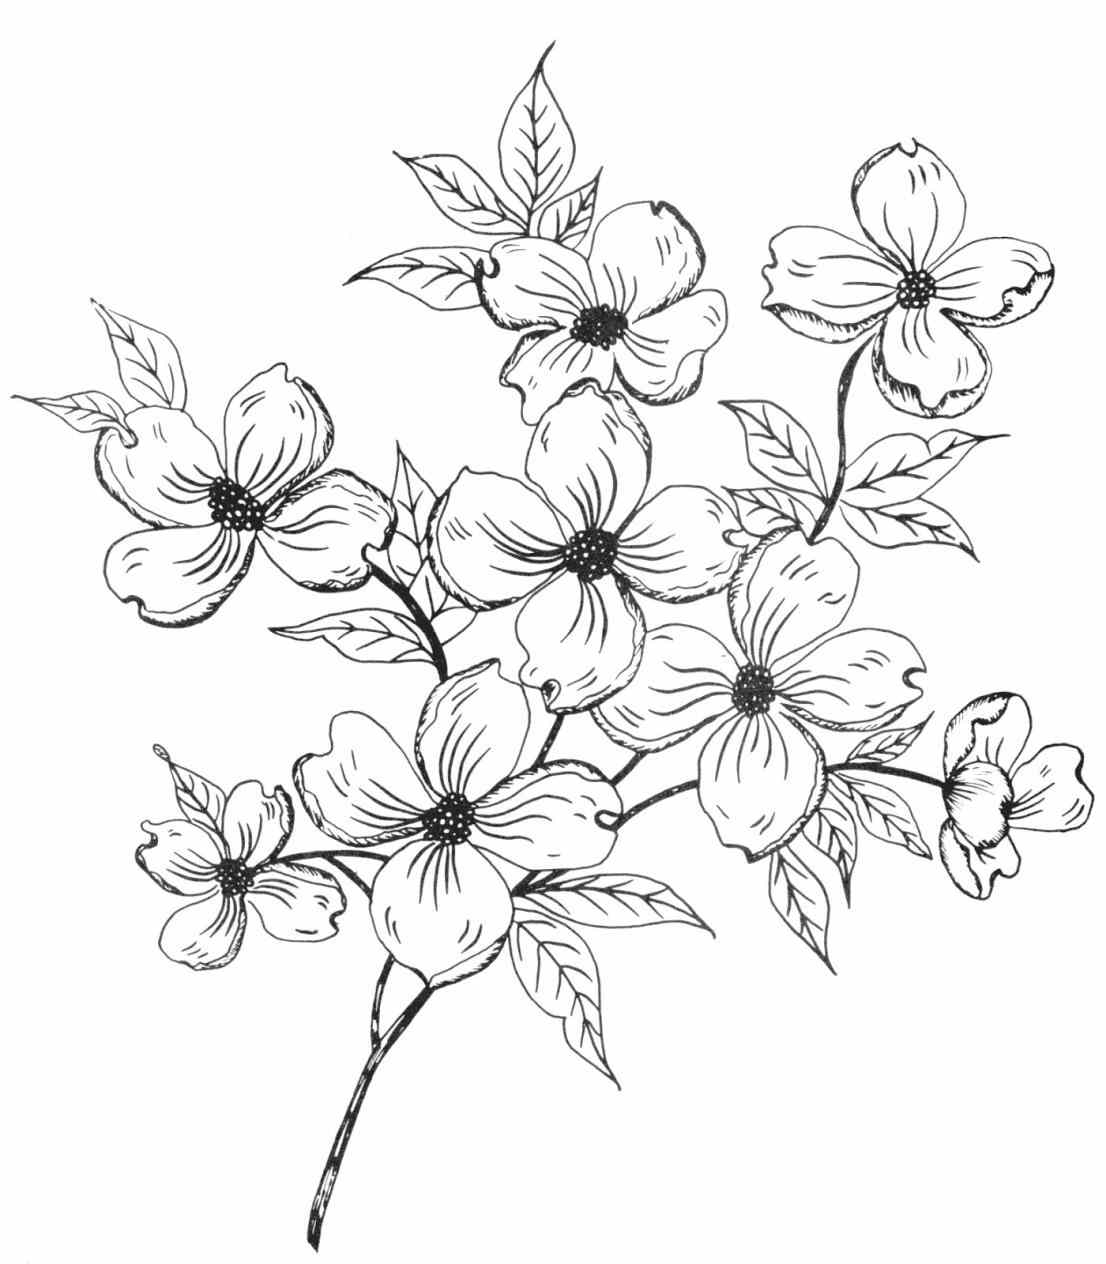 1106x1264 Plants And Flowers Drawings Darxxidecom